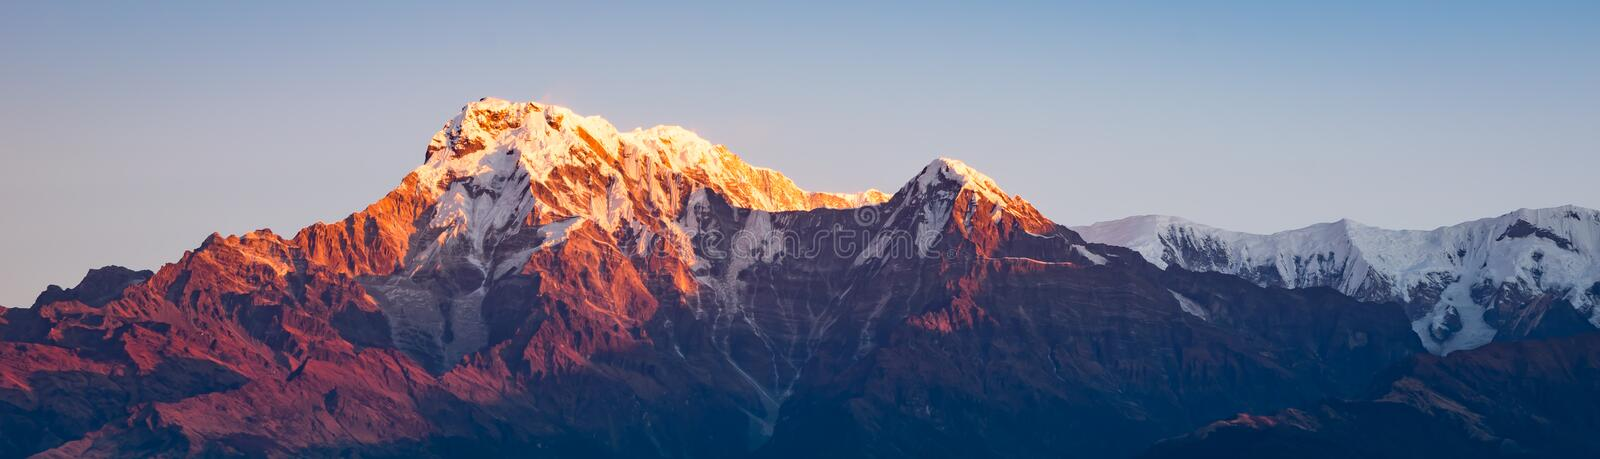 Annapurna South Panorama during golden hour with clear sky, Himalayas royalty free stock image